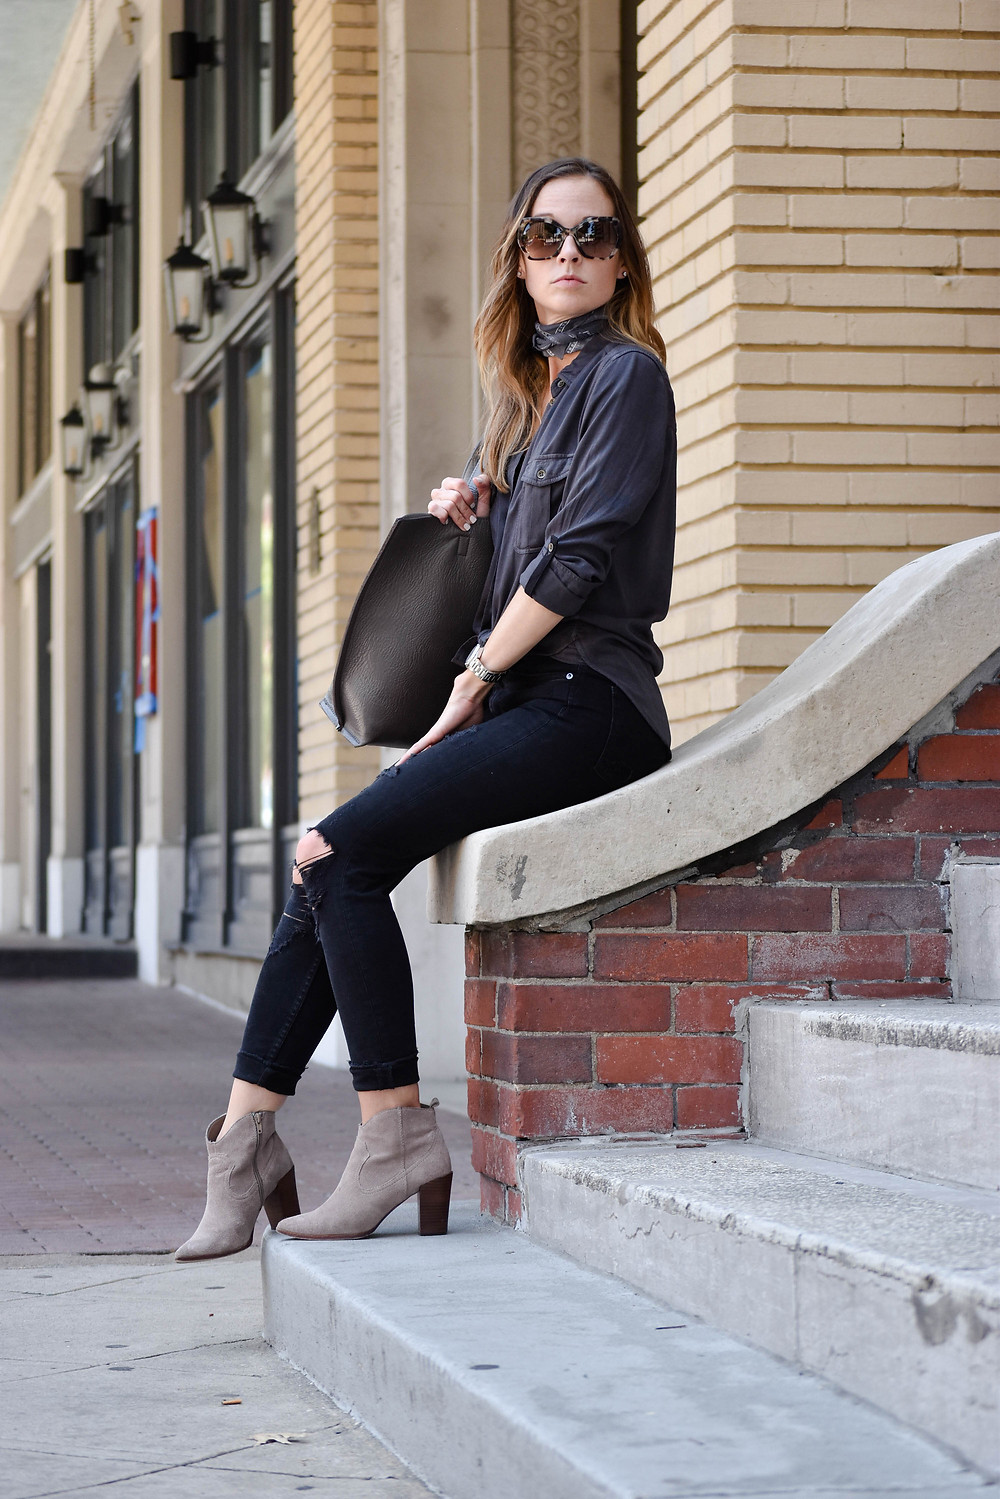 Shades of grey: Distressed black denim, military shirt, leather tote, booties. How to wear the bandana trend.